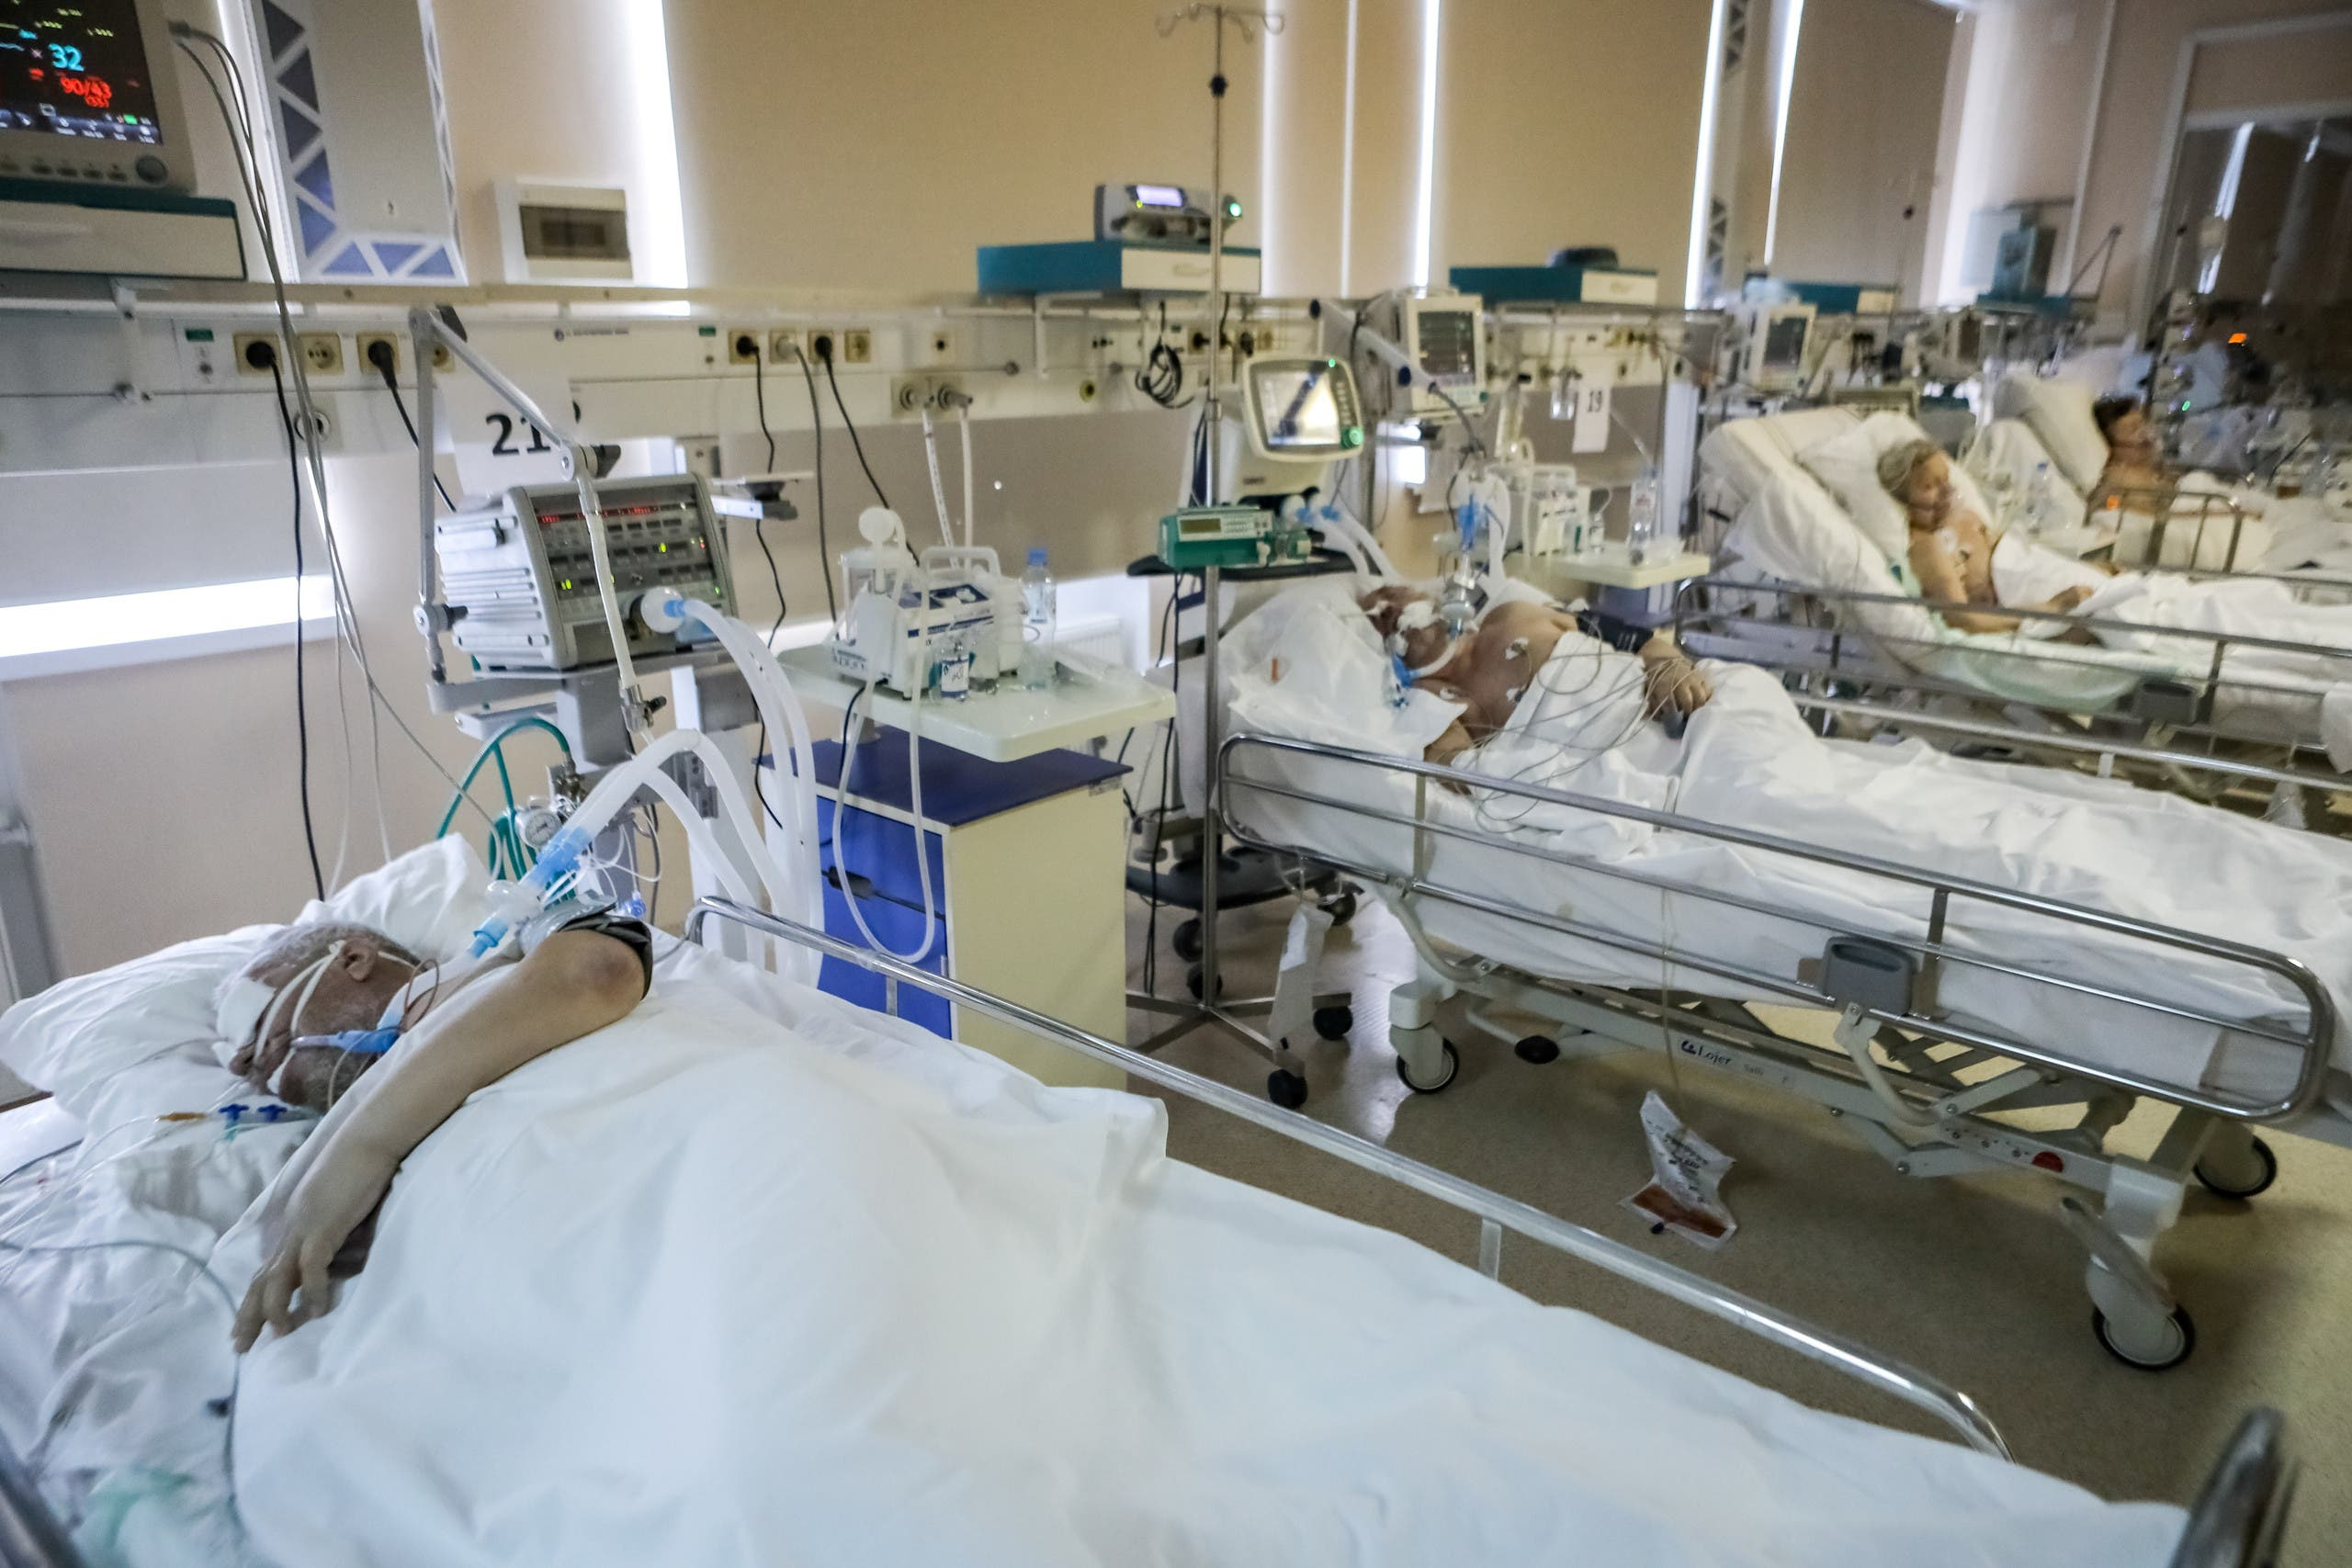 Patients receive treatment in an intensive care unit of the Central Clinical Hospital RZD-Medicine, which delivers medical aid to people infected with the coronavirus disease, Moscow, Russia, May 18, 2020. (Reuters)